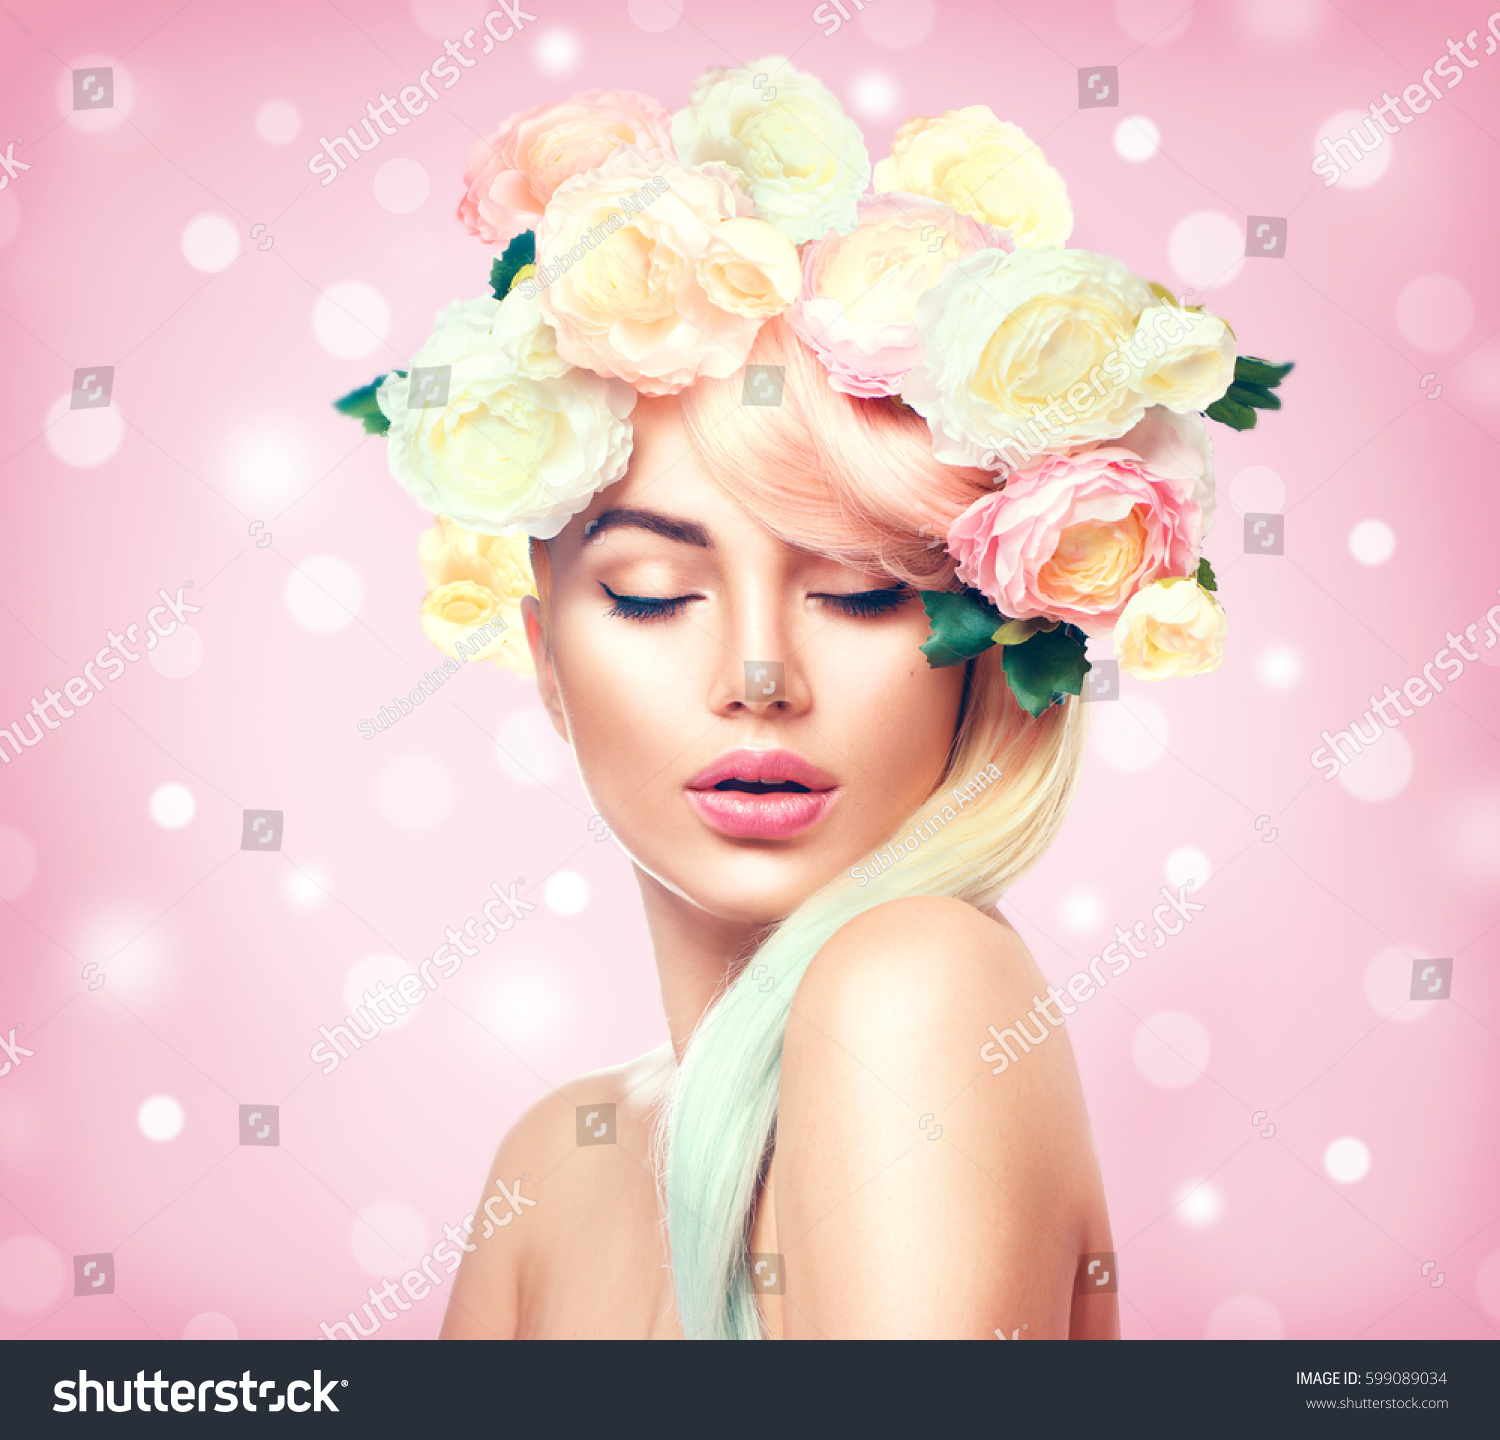 Spring woman beauty summer model girl stock photo edit now beauty summer model girl with colorful flowers wreath and colorful hair flowers izmirmasajfo